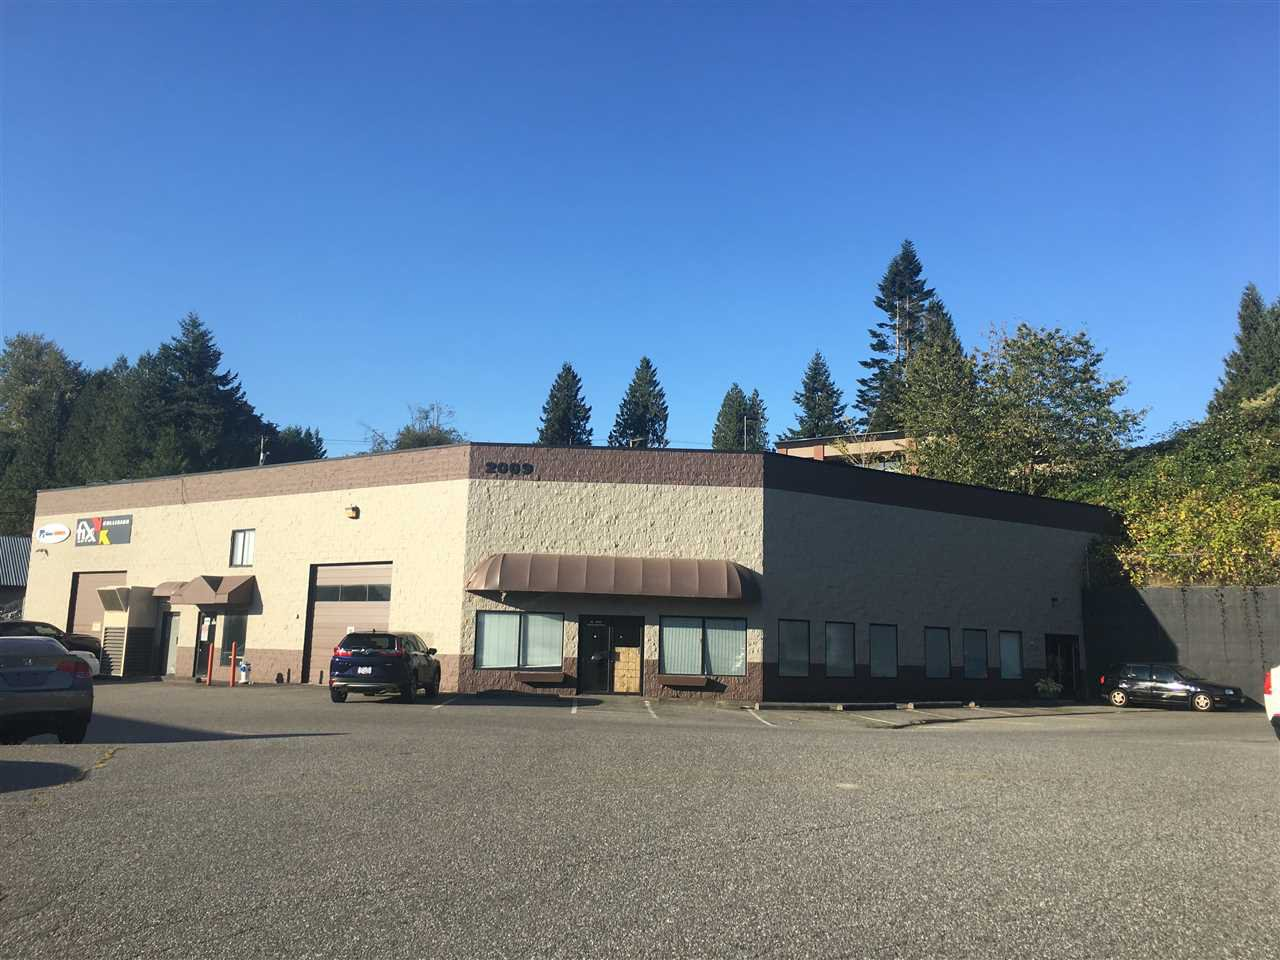 Main Photo: 4 2009 ABBOTSFORD Way in Abbotsford: Central Abbotsford Office for lease : MLS®# C8034137